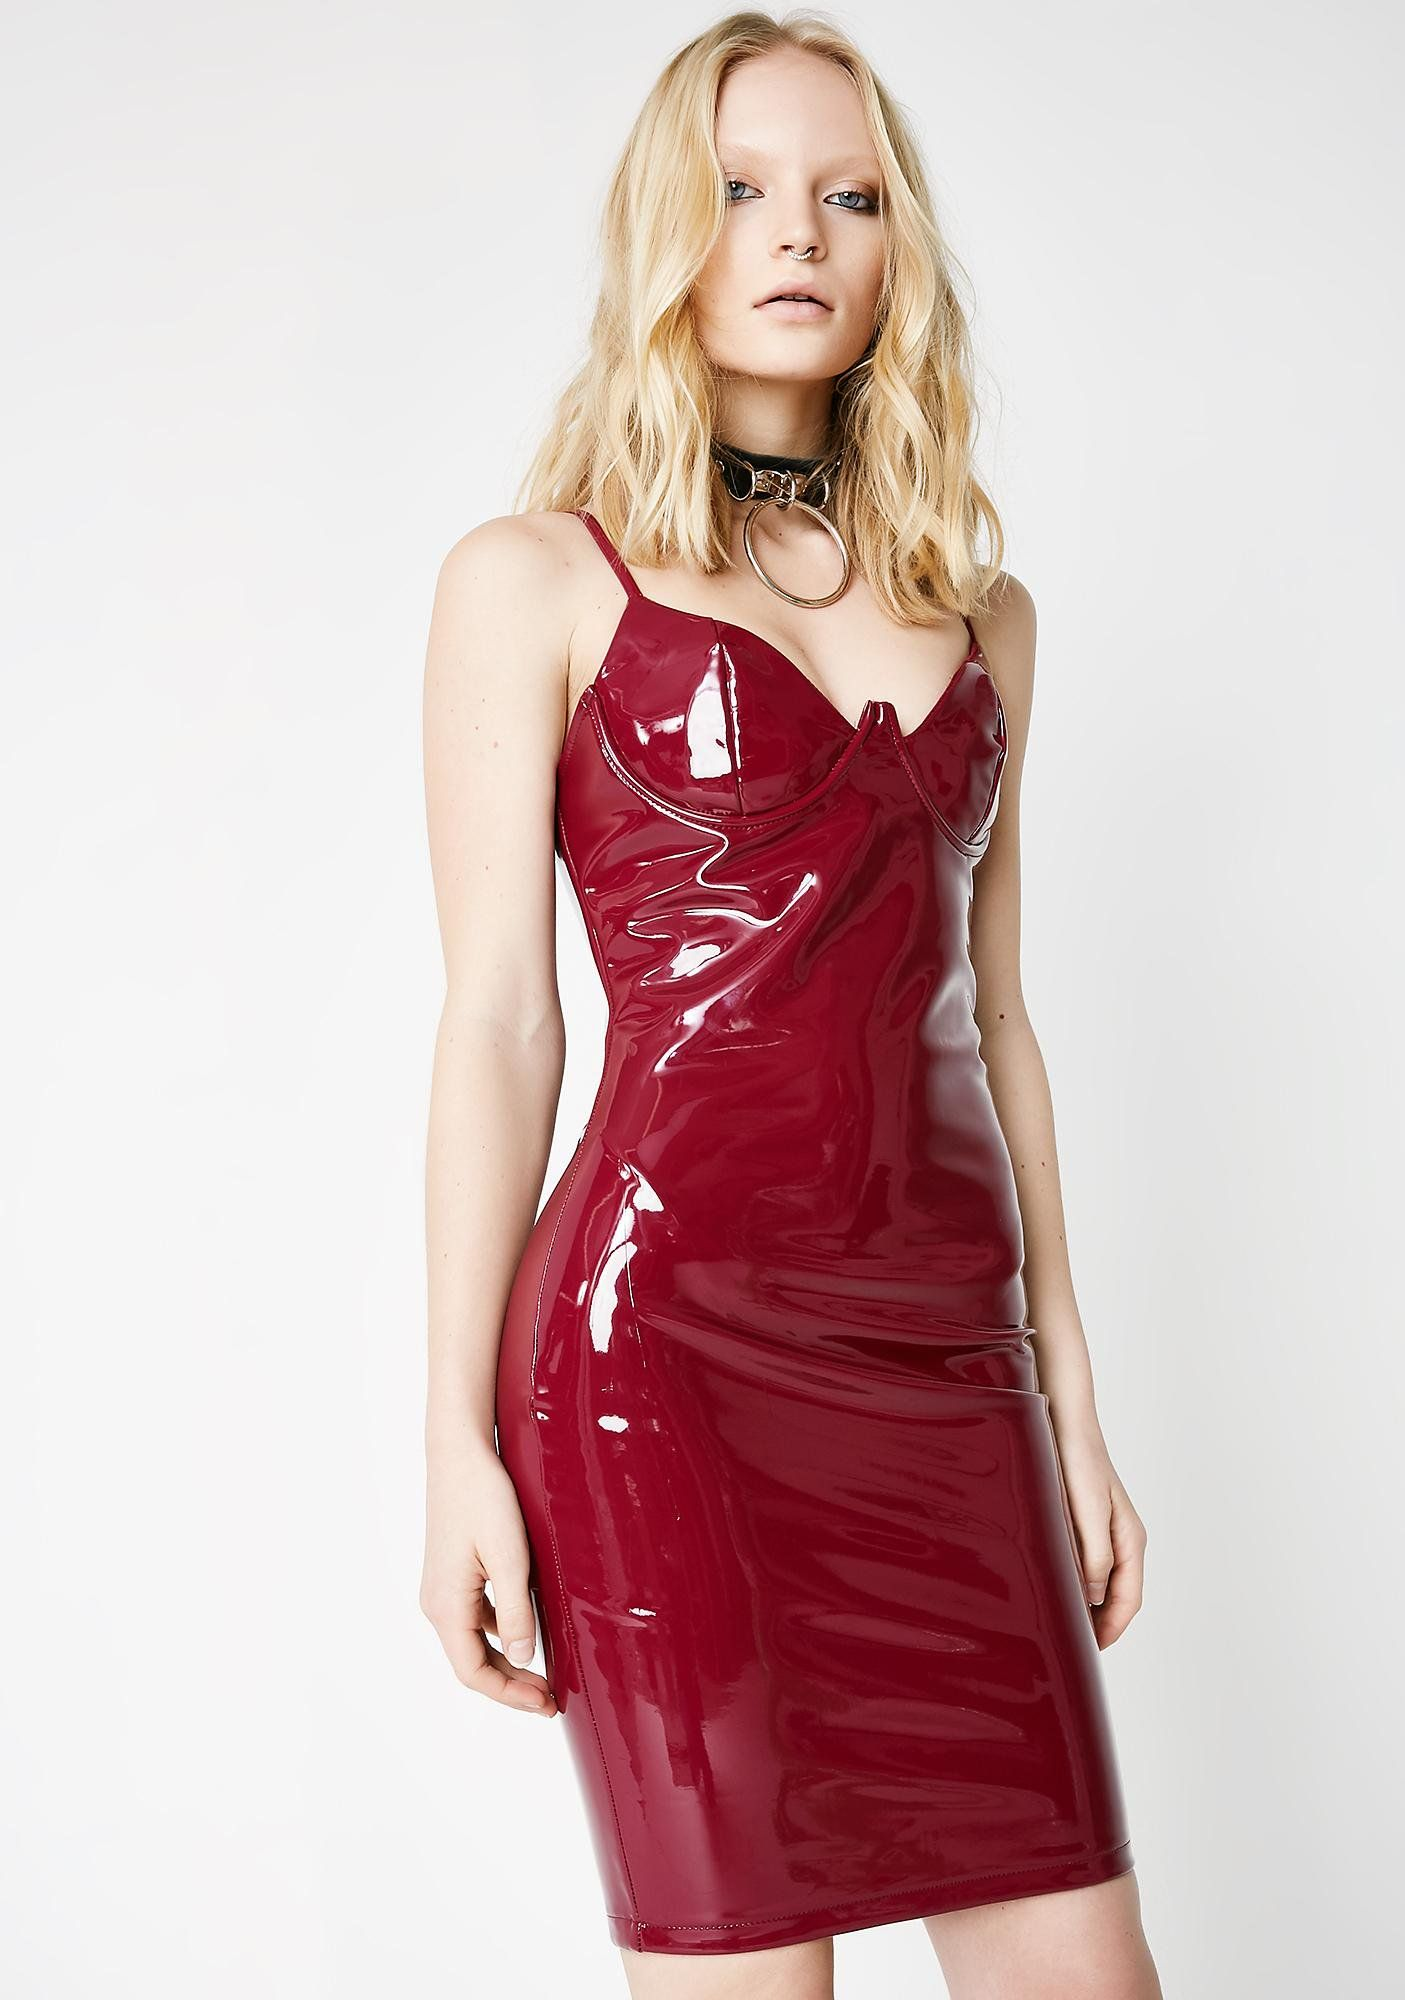 6b50a9c3c42 This berry red mini vinyl dress has a bodycon fit with adjustable spaghetti  straps and a zipper closure on the back.